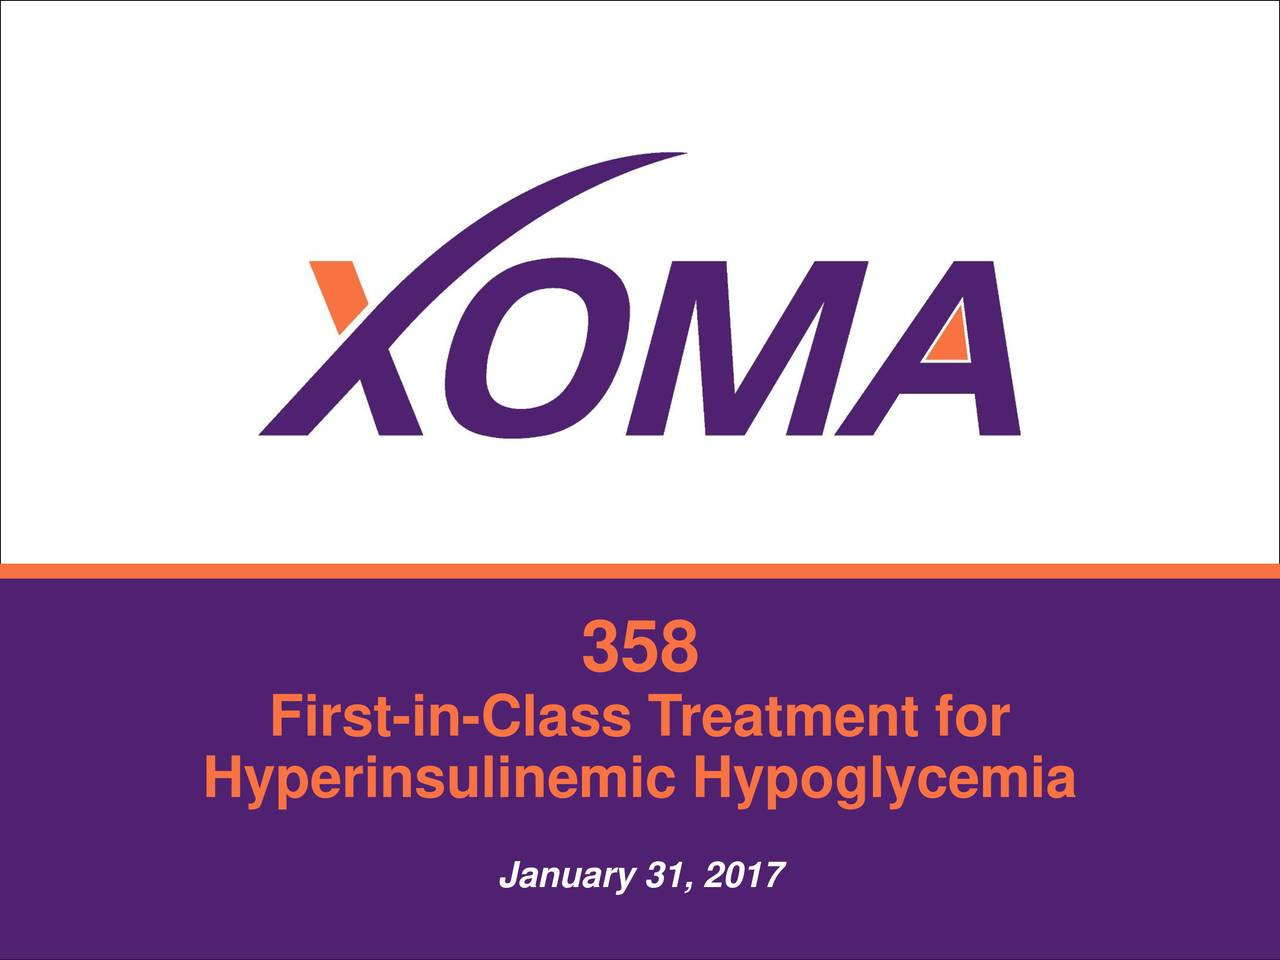 First-in-Class Treatment for Hyperinsulinemic Hypoglycemia January 31, 2017